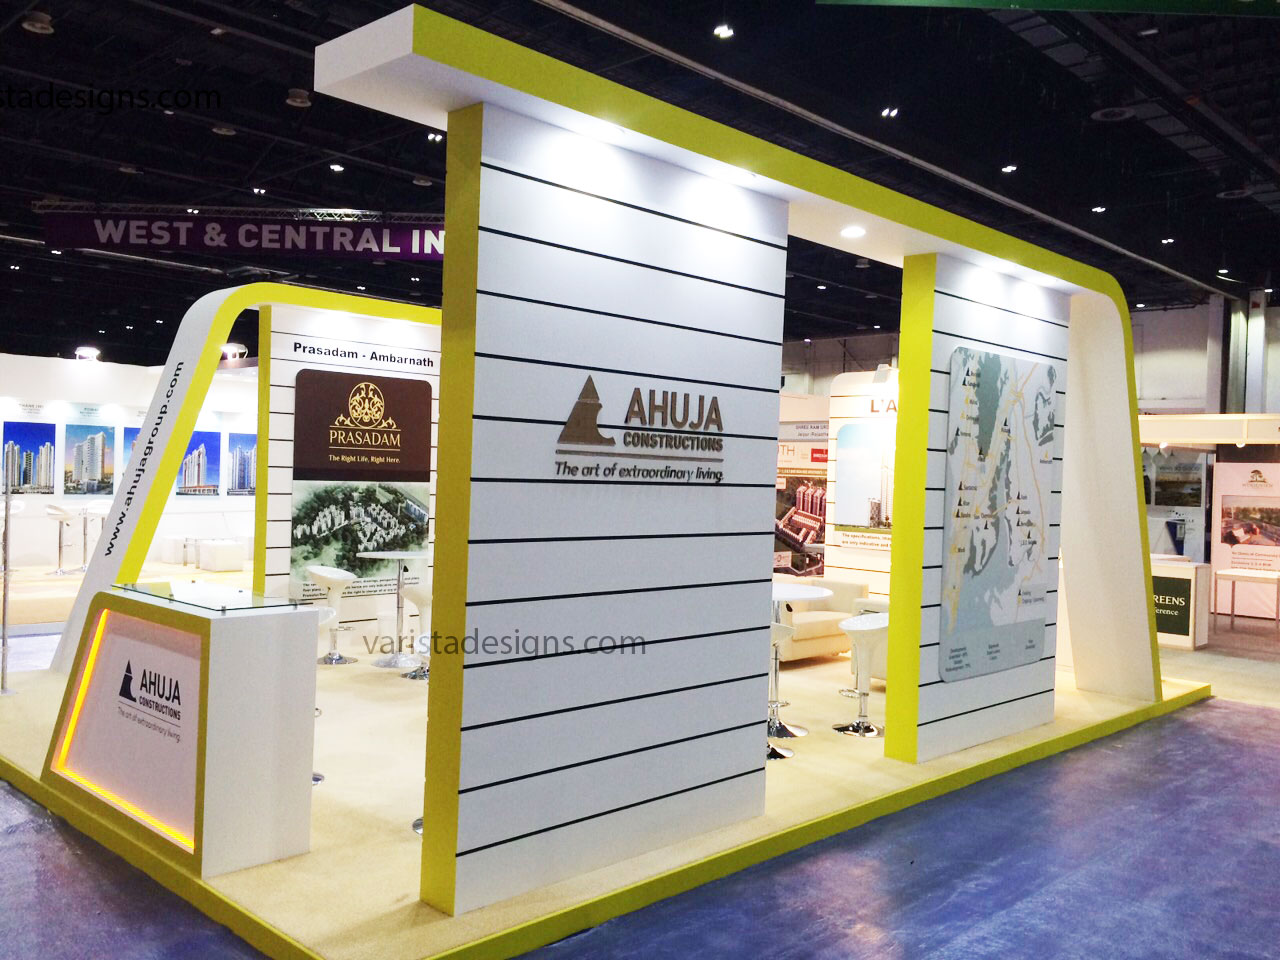 Ahuja construction exhibition stand builders